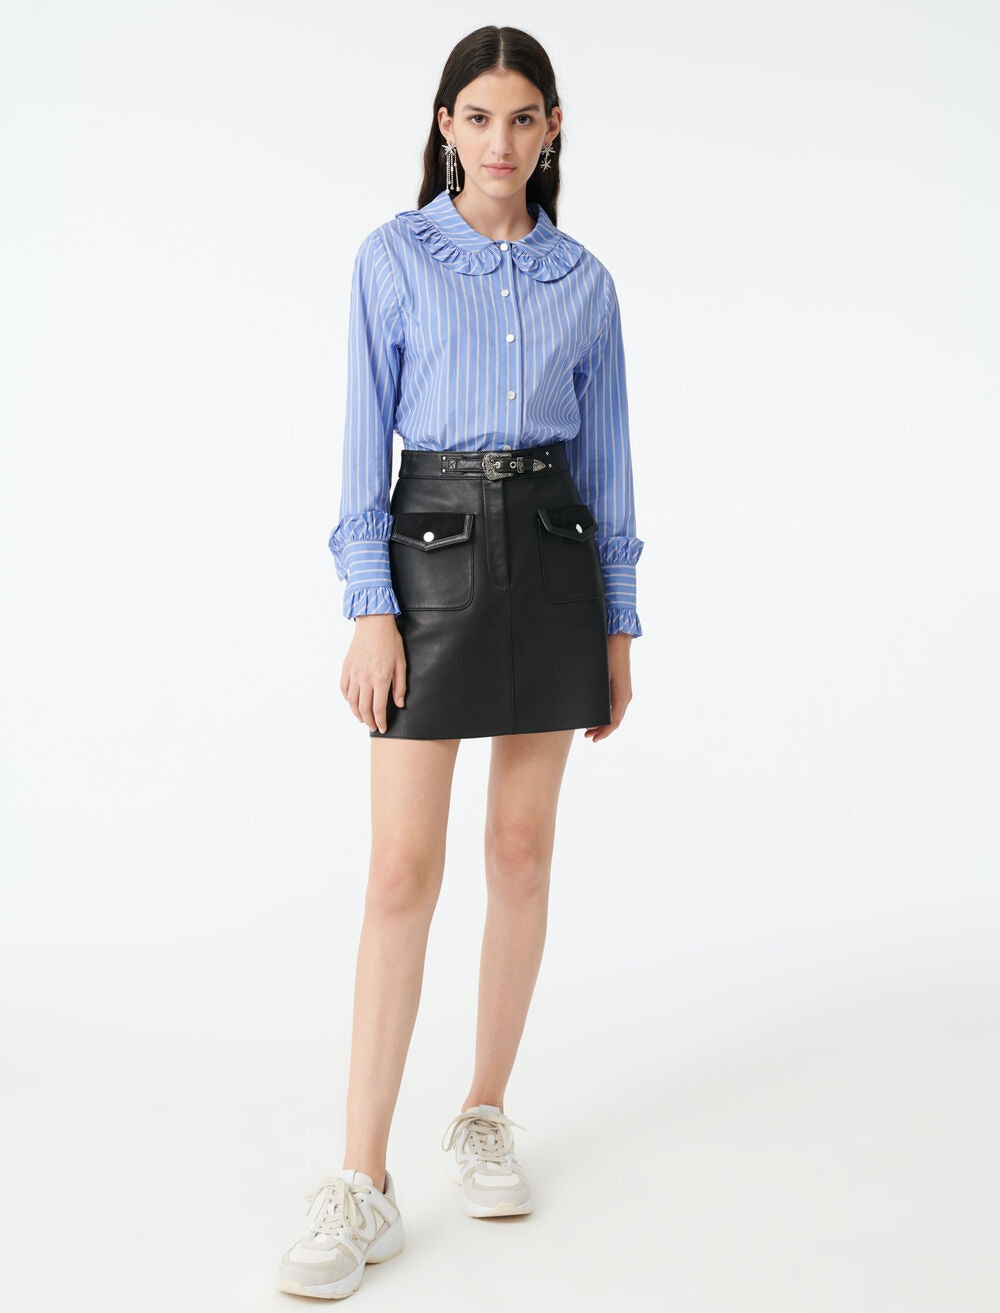 STRIPED SHIRT WITH A FRILLED COLLAR